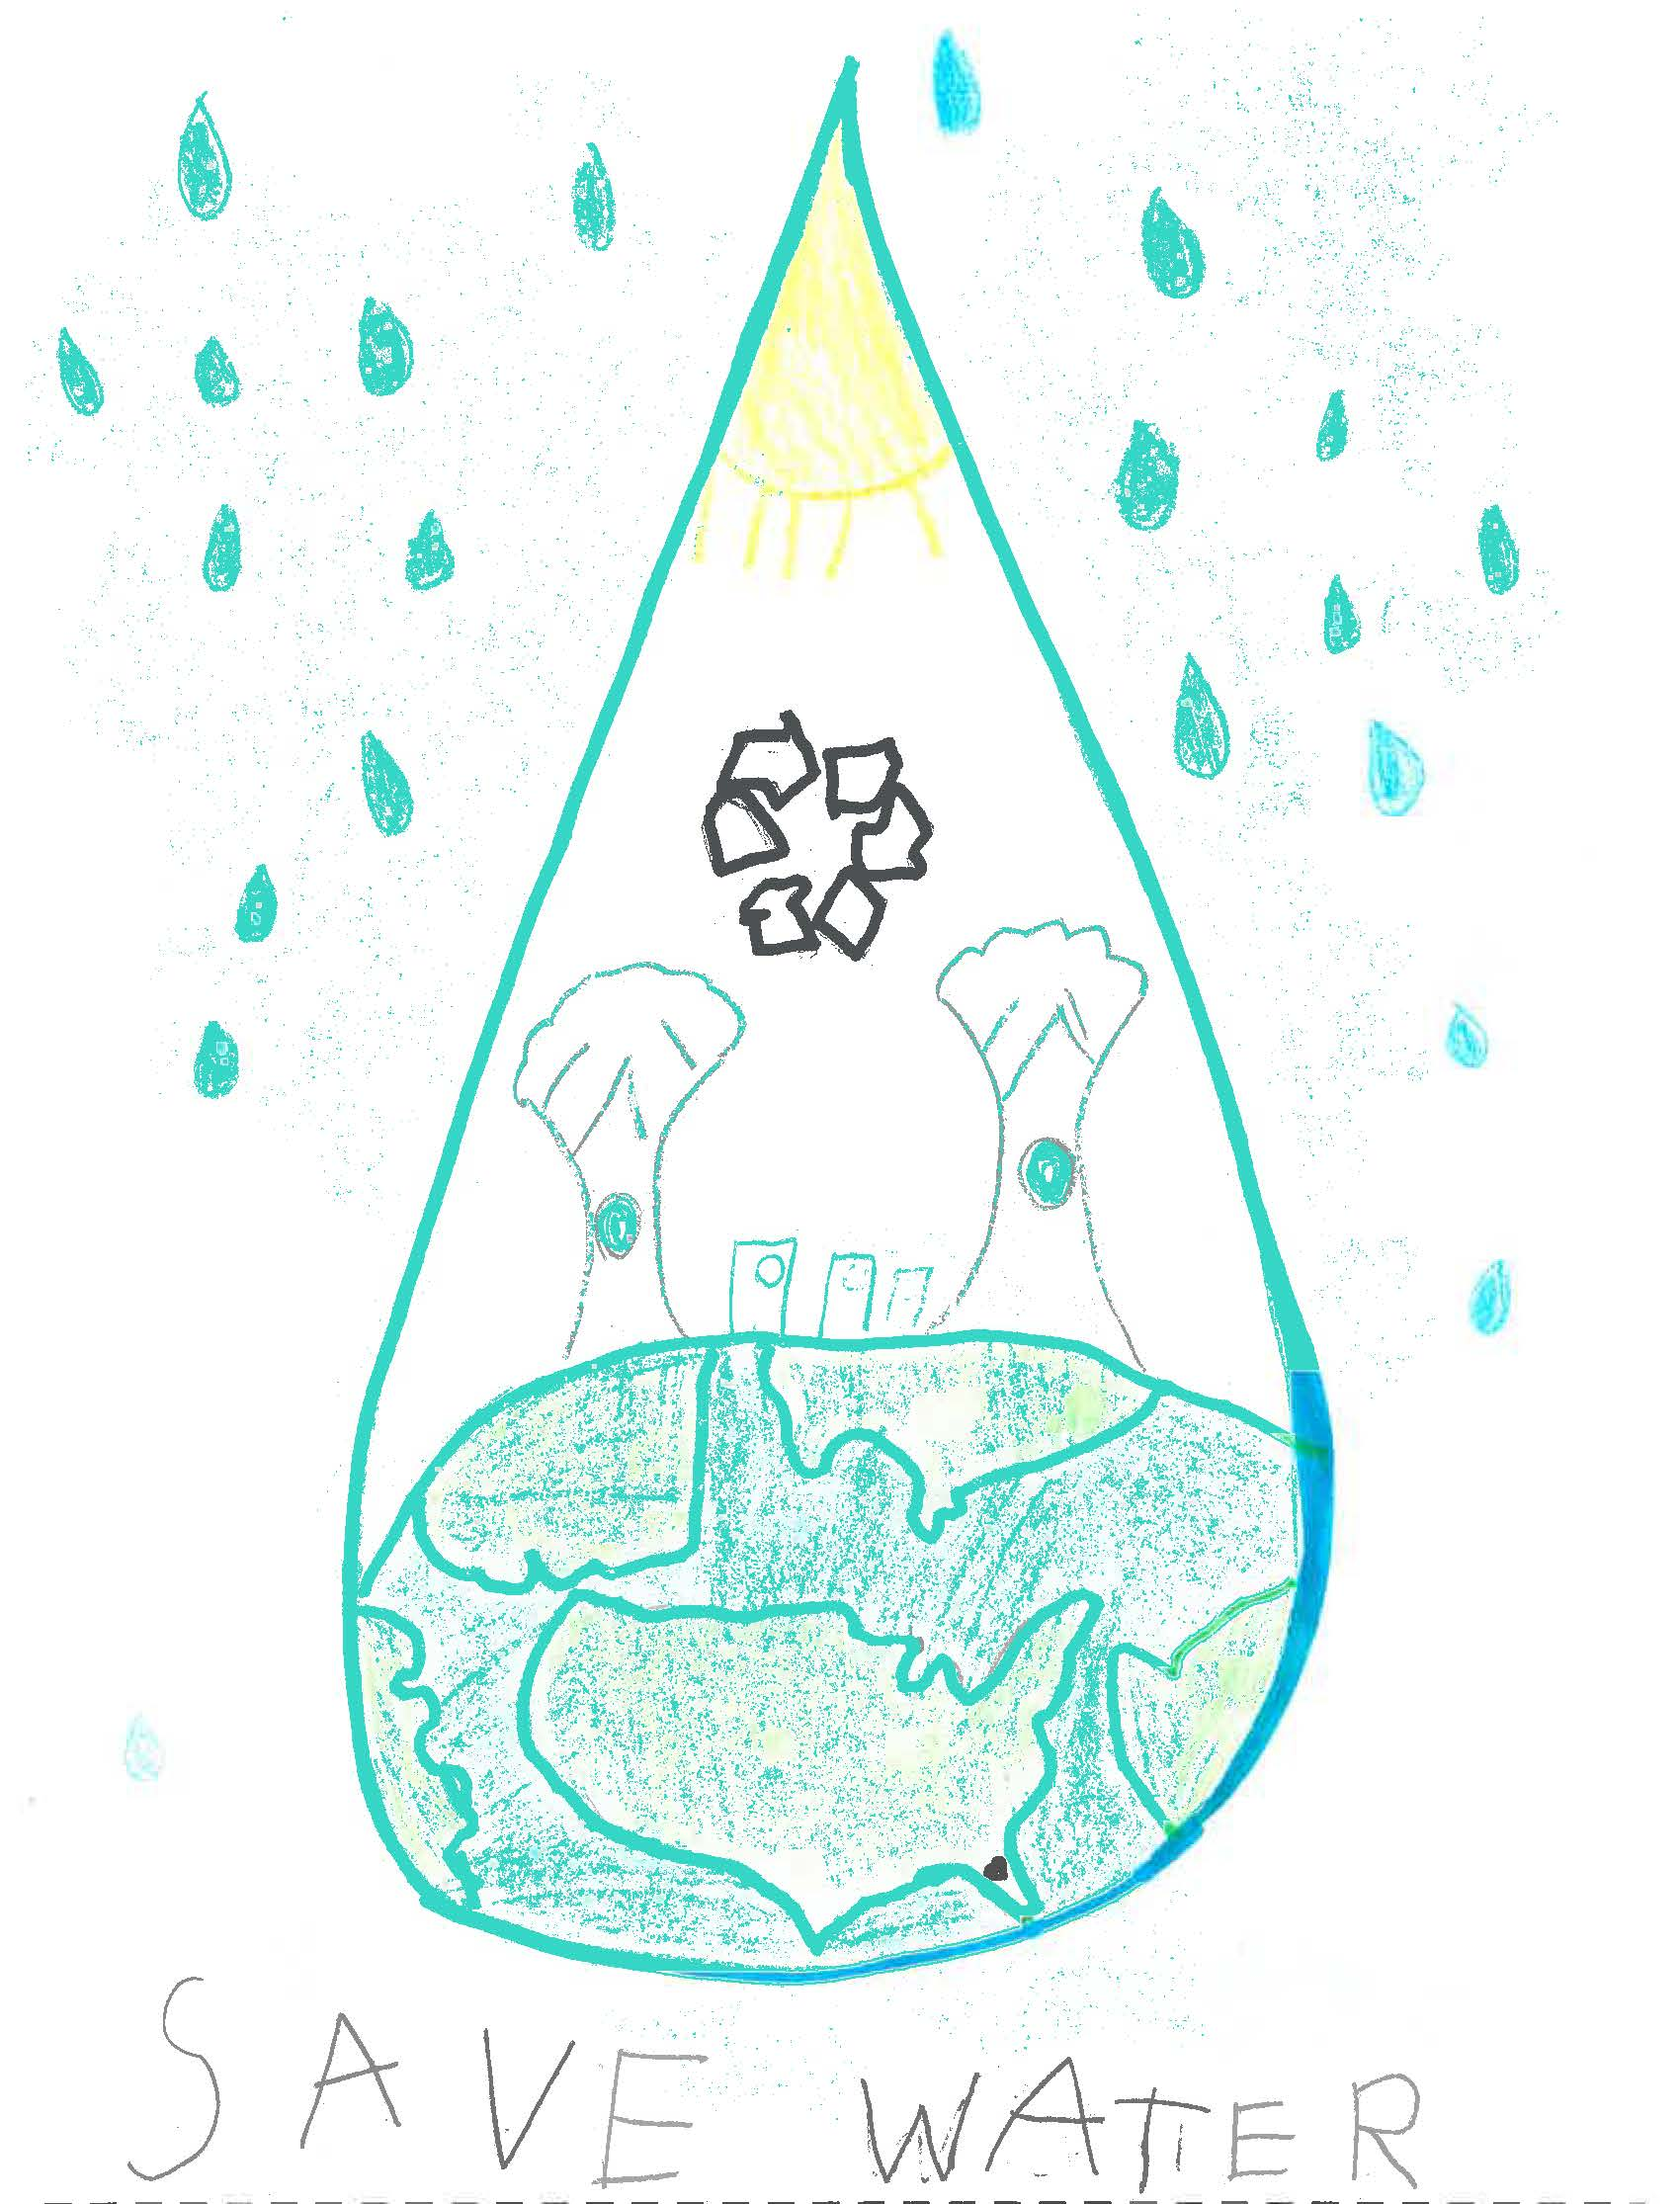 Water conservation drawing by Oldsmar student